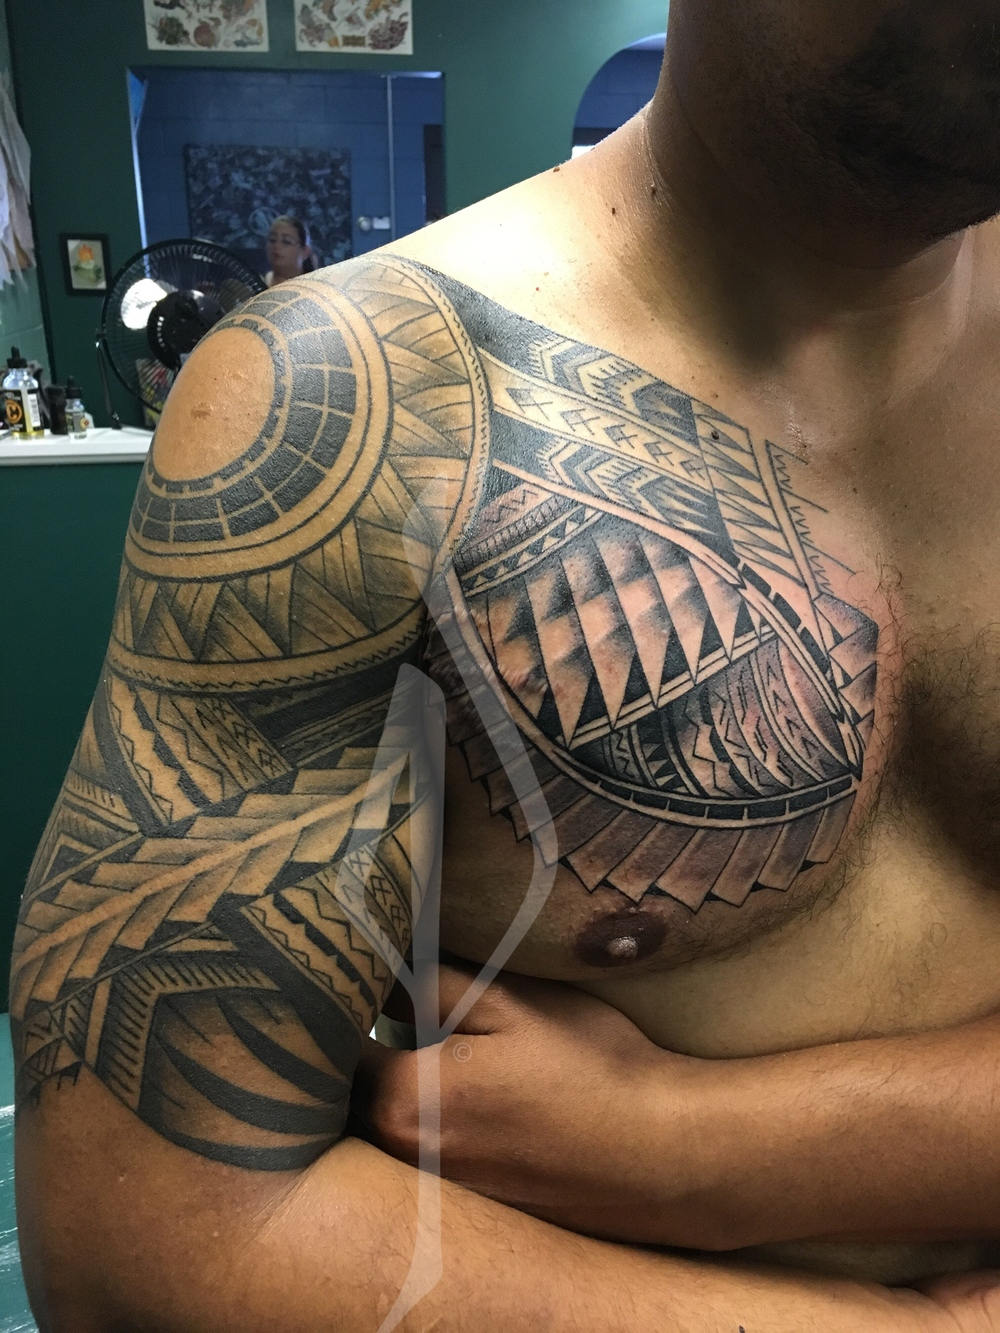 Freehand Polynesian Tribal Tattoo by Jon Poulson - Aloha Salt Lake Tattoos